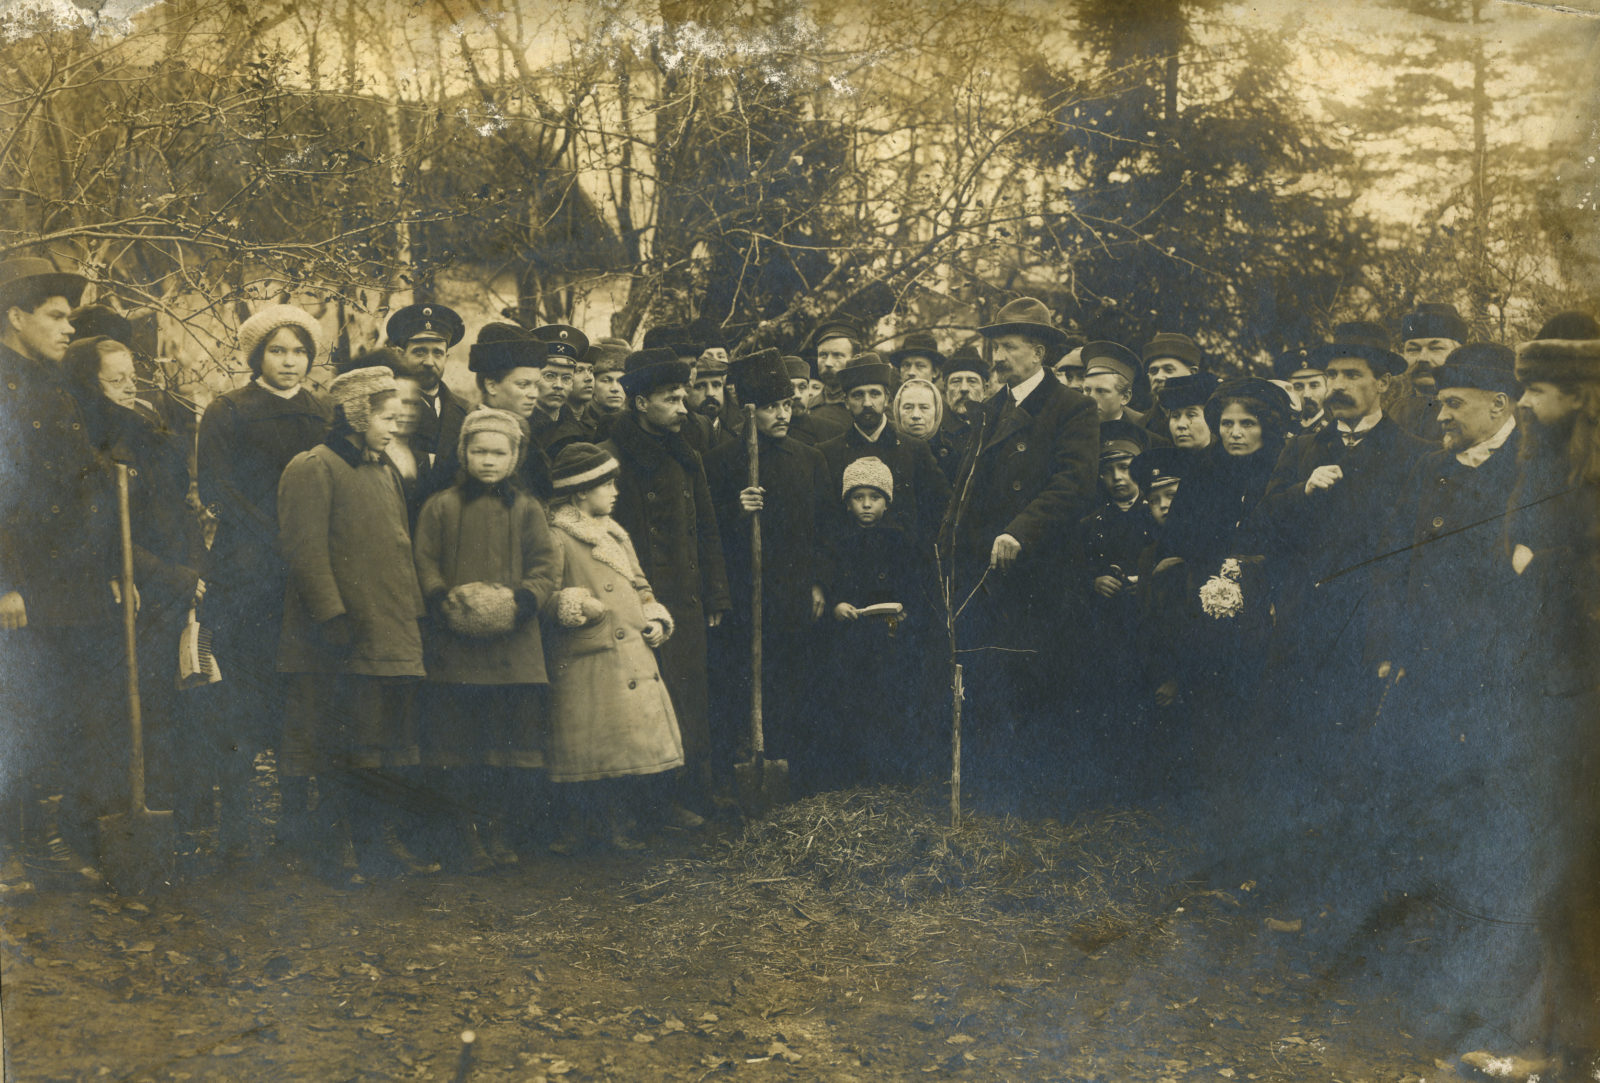 Murom, Planting trees city public. 1900-1910.